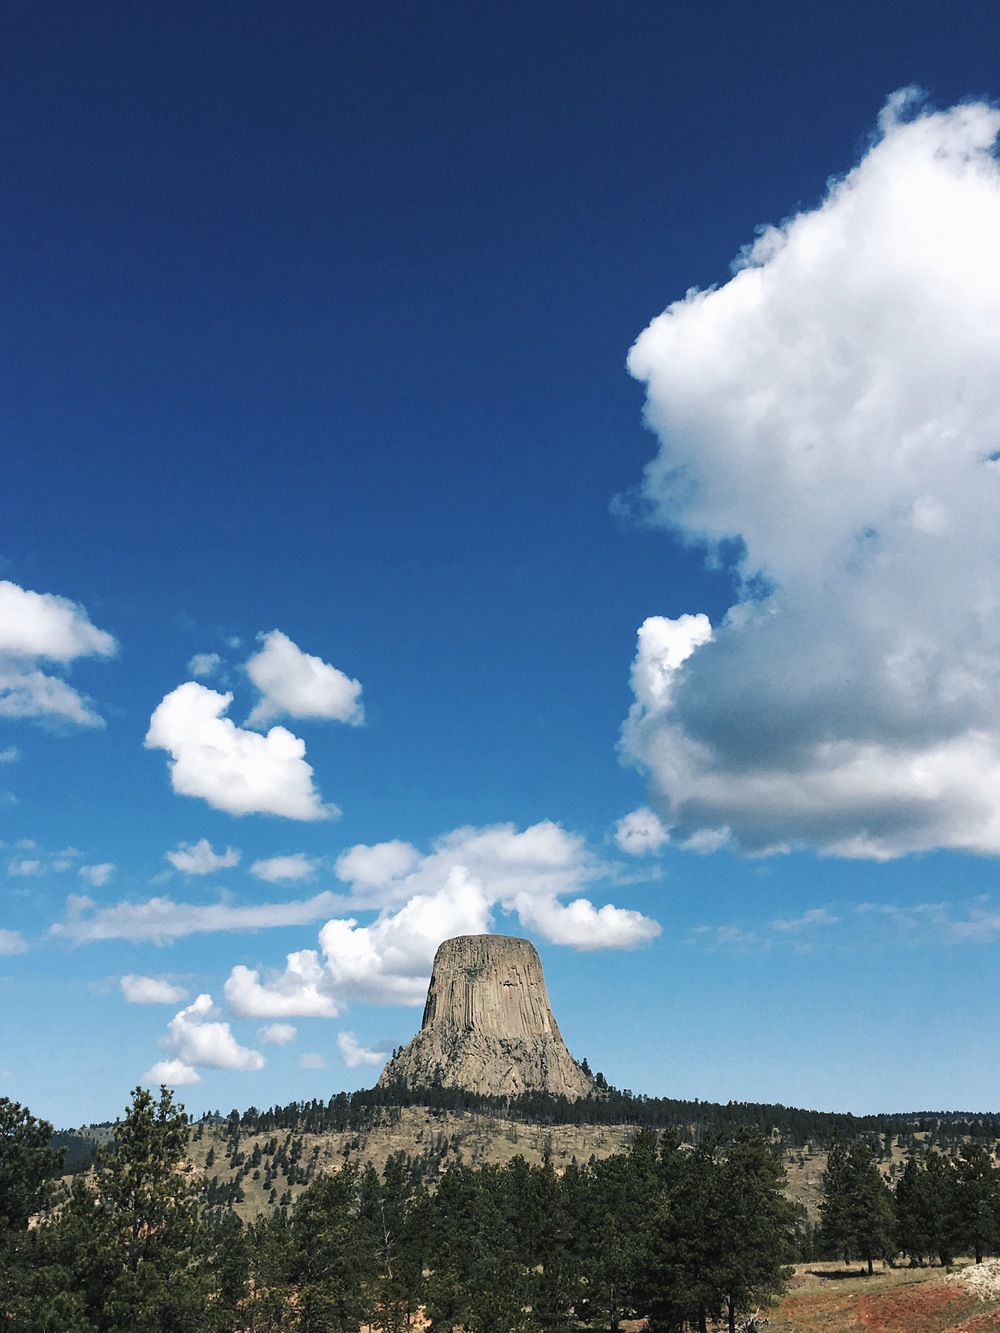 And just down the road from Devil's Tower View restaurant, Devil's Tower! Definitely one of the coolest sights of the trip - partially because  nobody really knows what it is.